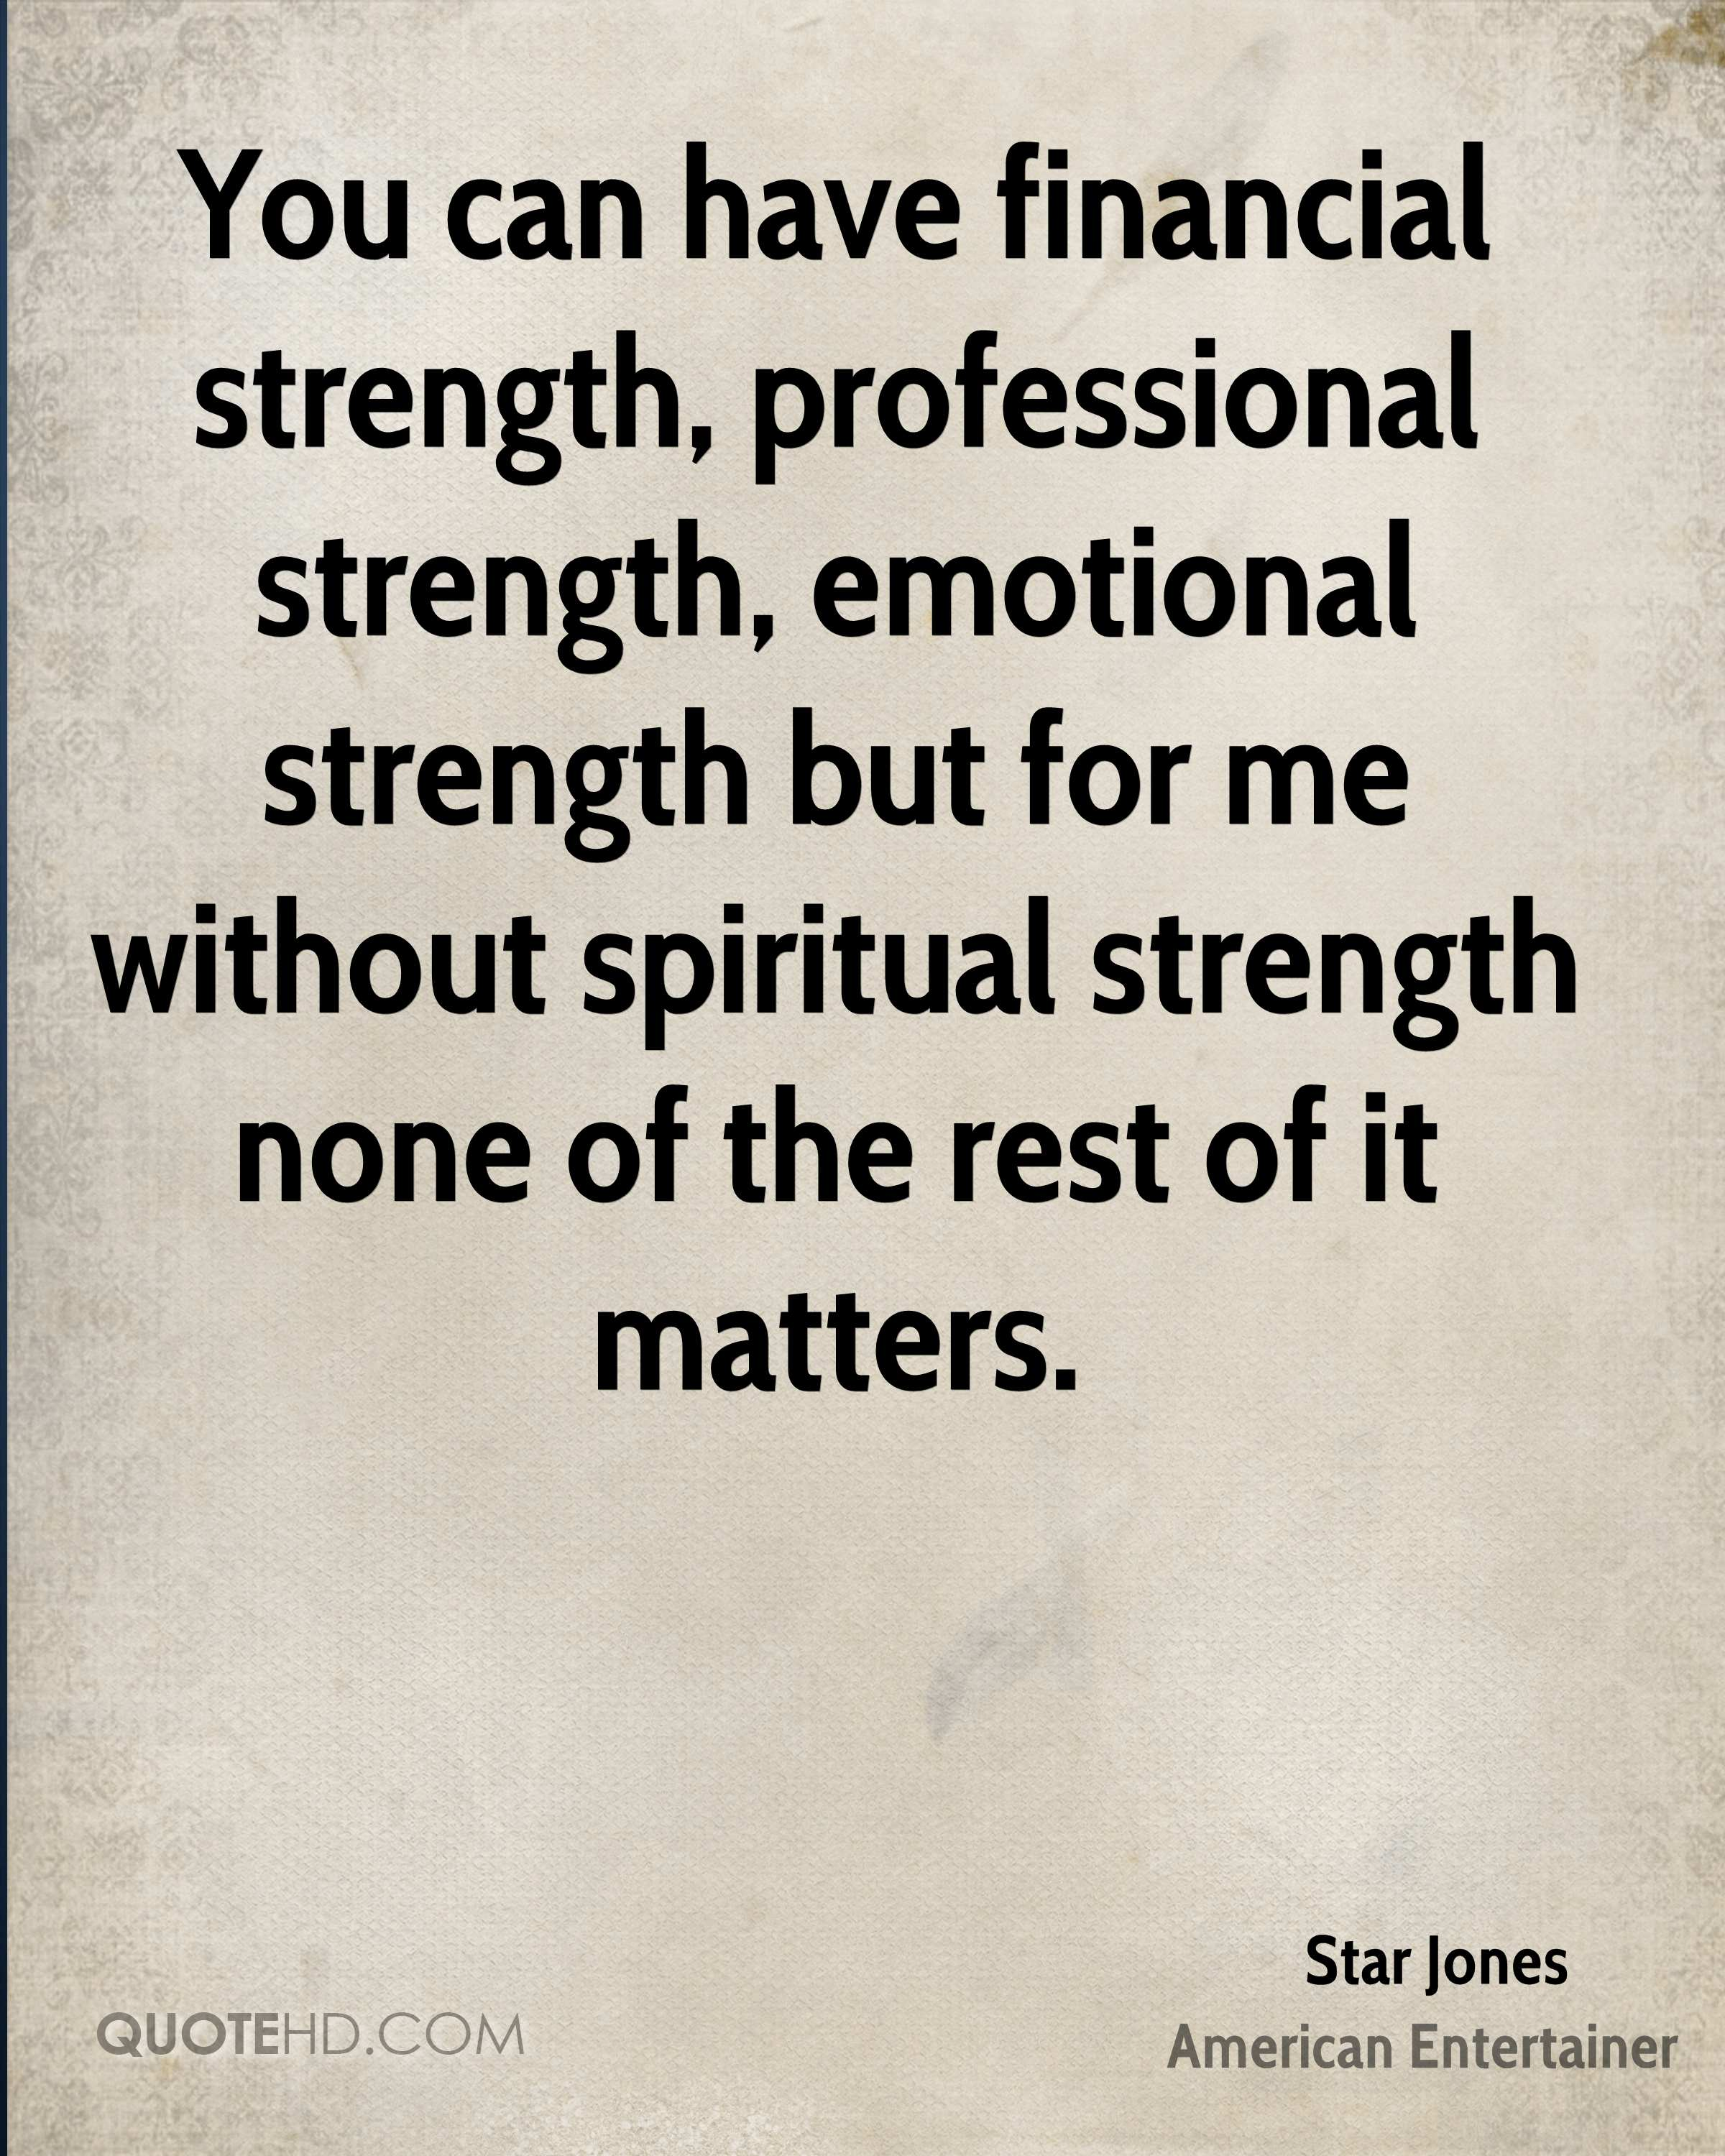 You can have financial strength, professional strength, emotional strength but for me without spiritual strength none of the rest of it matters.